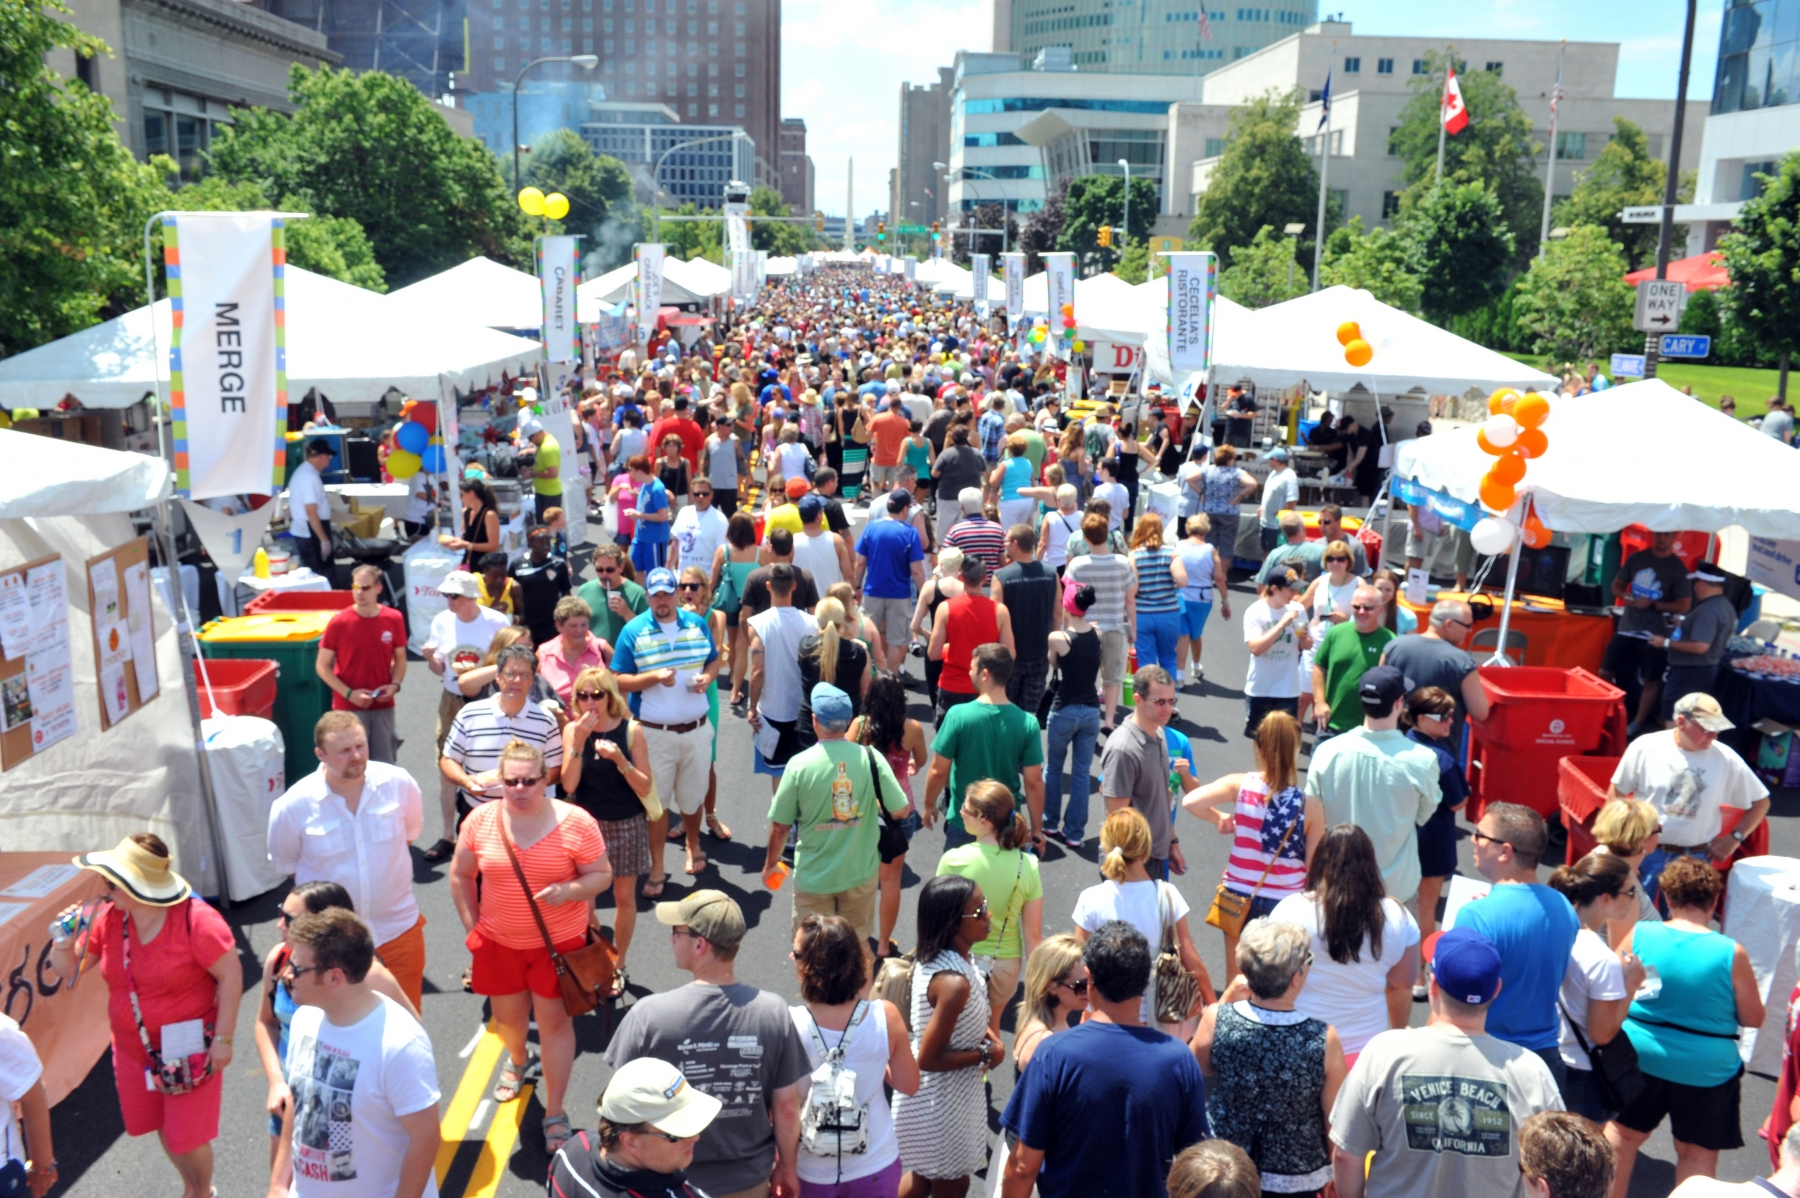 Taste of Buffalo Crowds